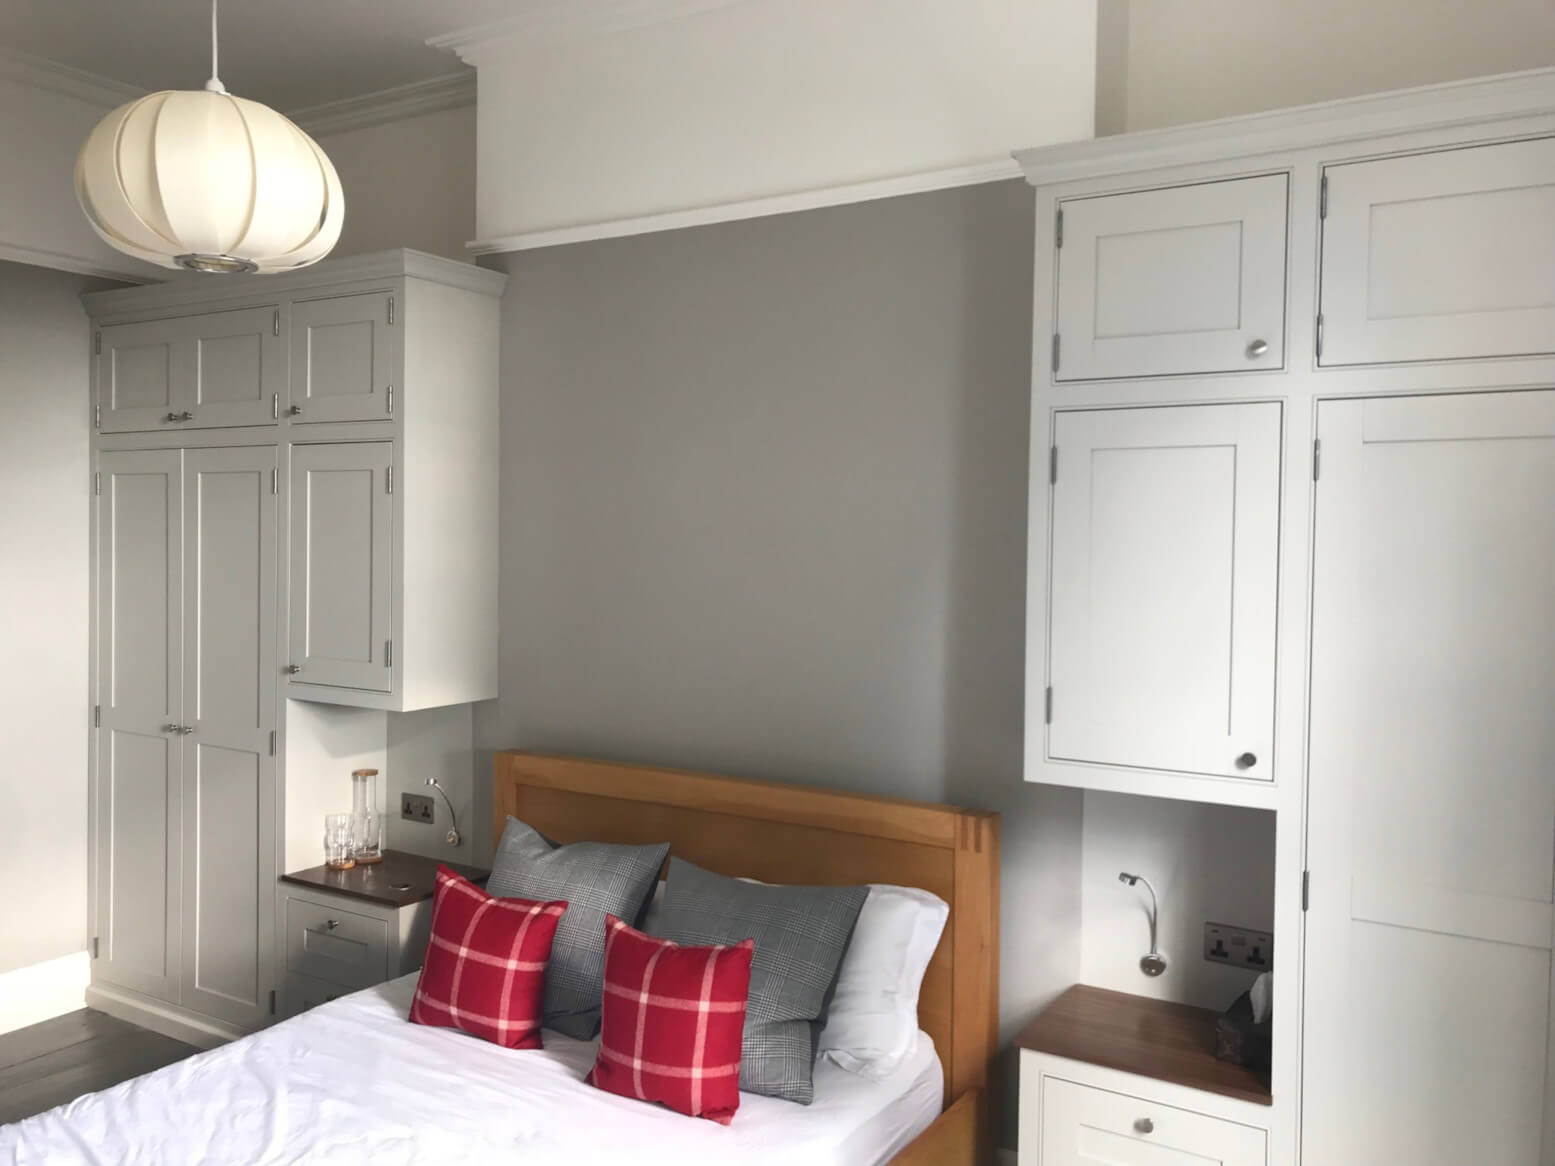 Bespoke wardrobe, double wardrobes, bedside wardrobes,bedroom furniture, elegant bespoke living, bespoke wardrobes,leamington spa, Warwick, carpentry, joinery,